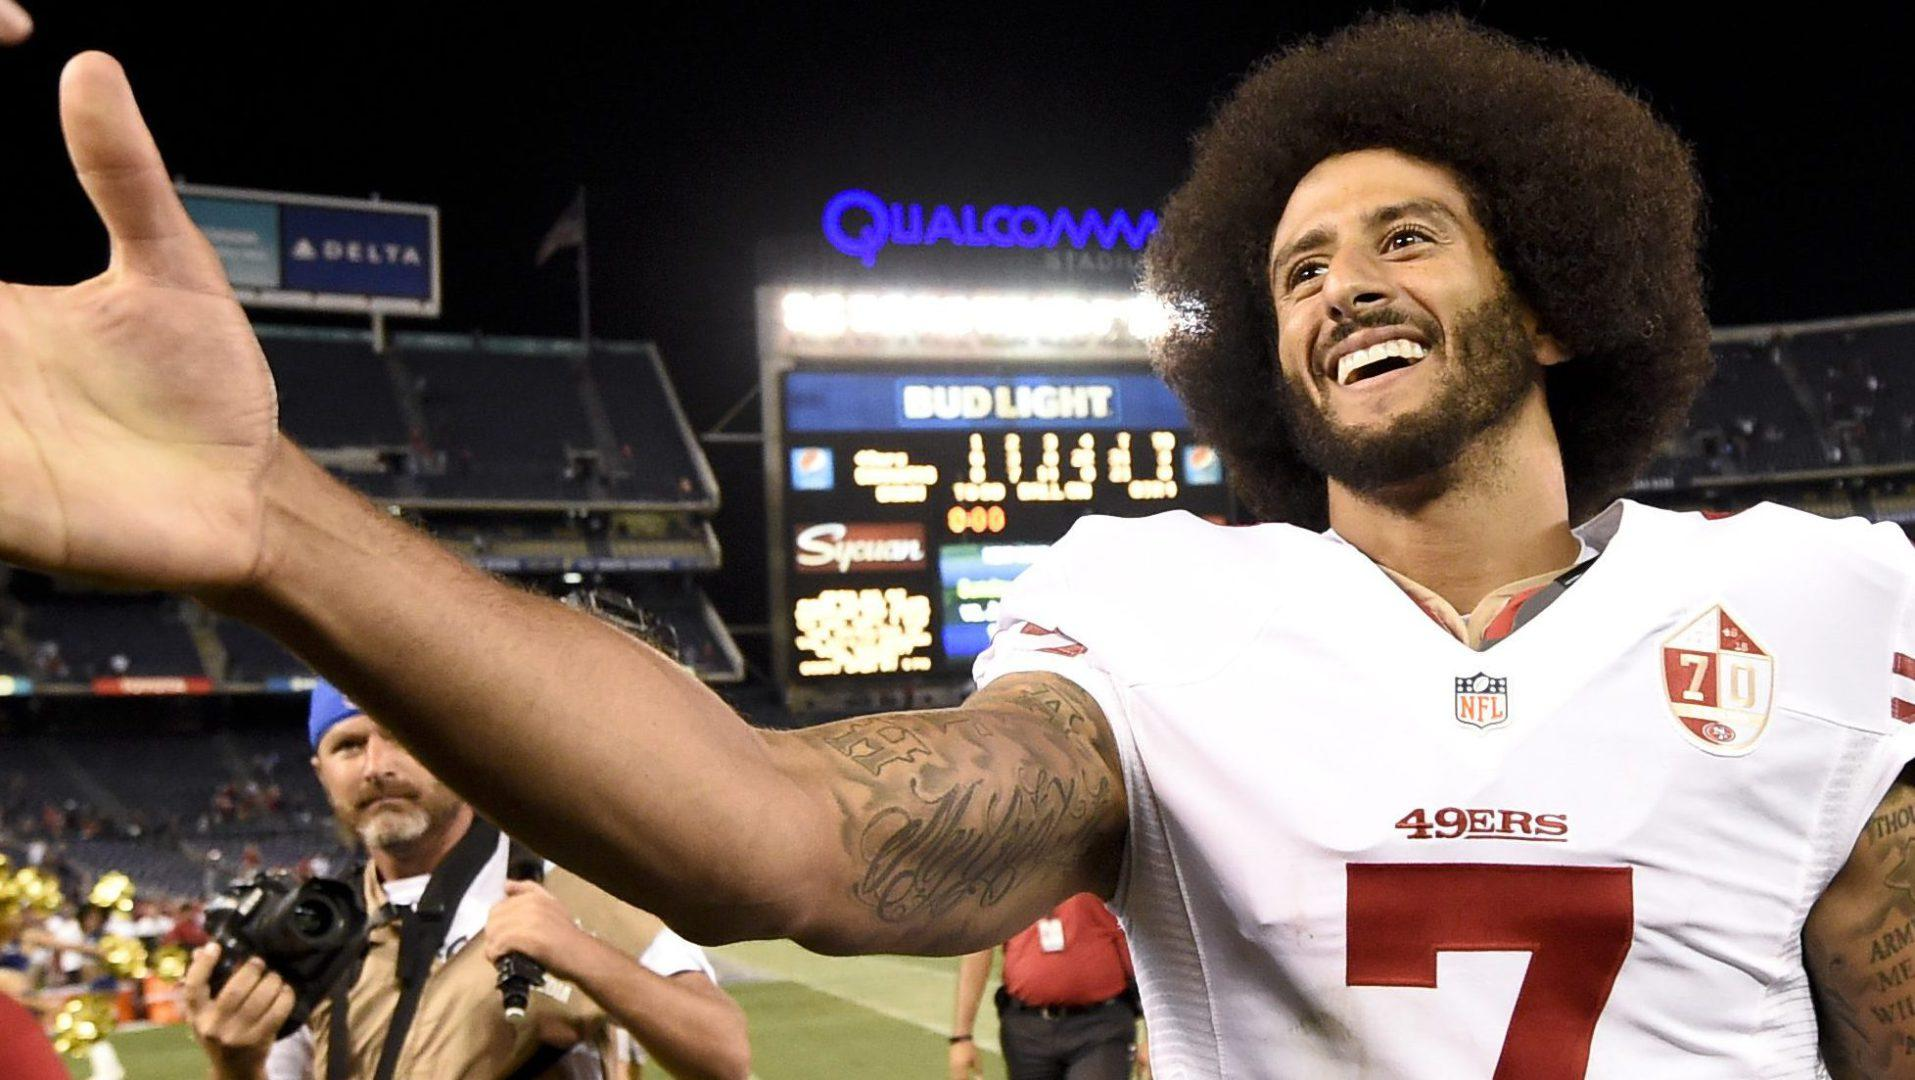 Elway's Kaepernick comments could be problematic for NFL